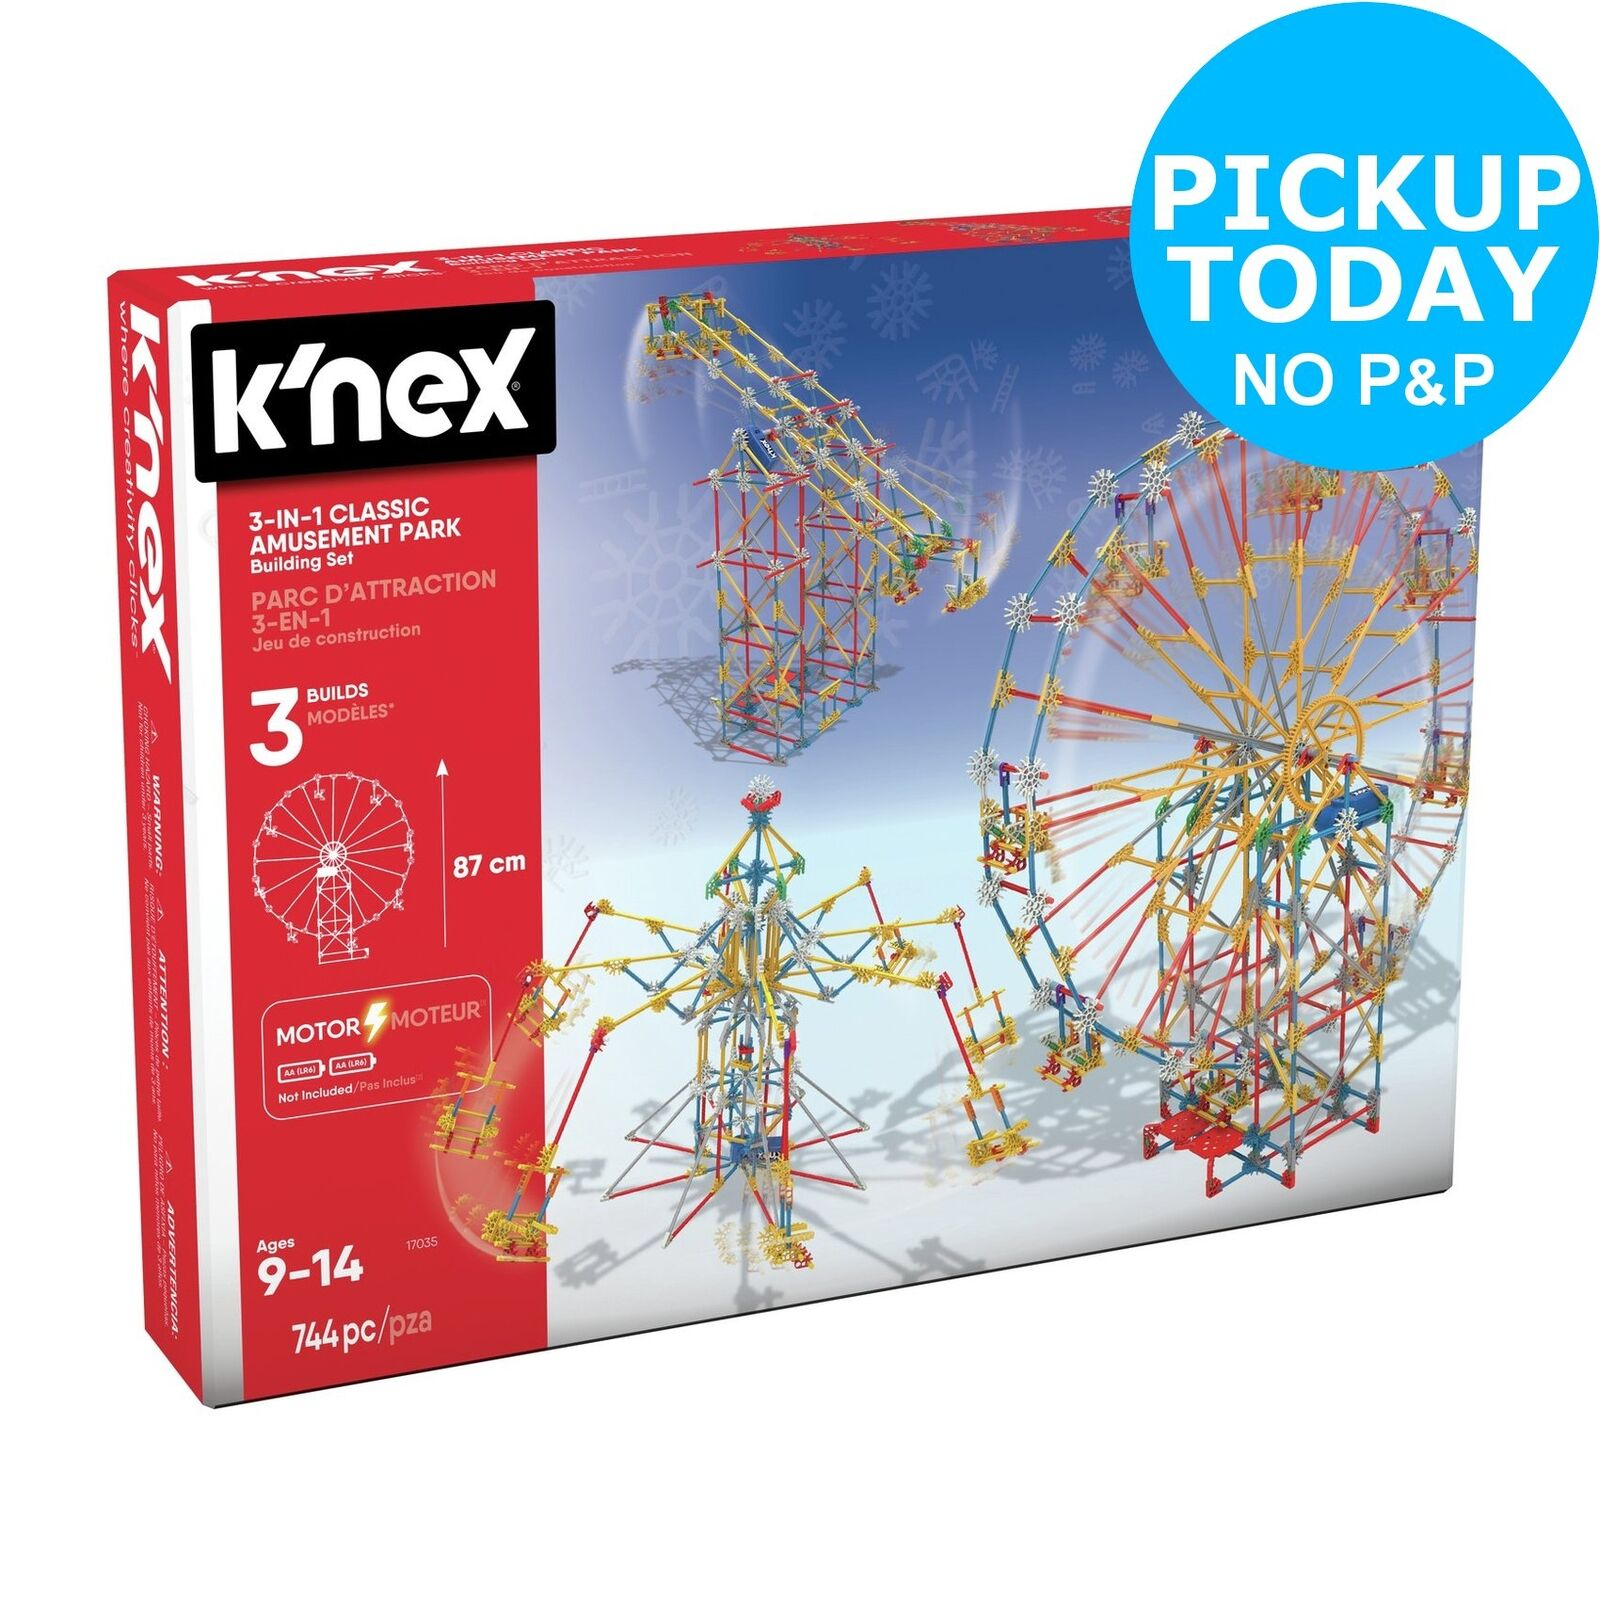 K'NEX 744 Part 3-in-1 Amusement Park Building Set.